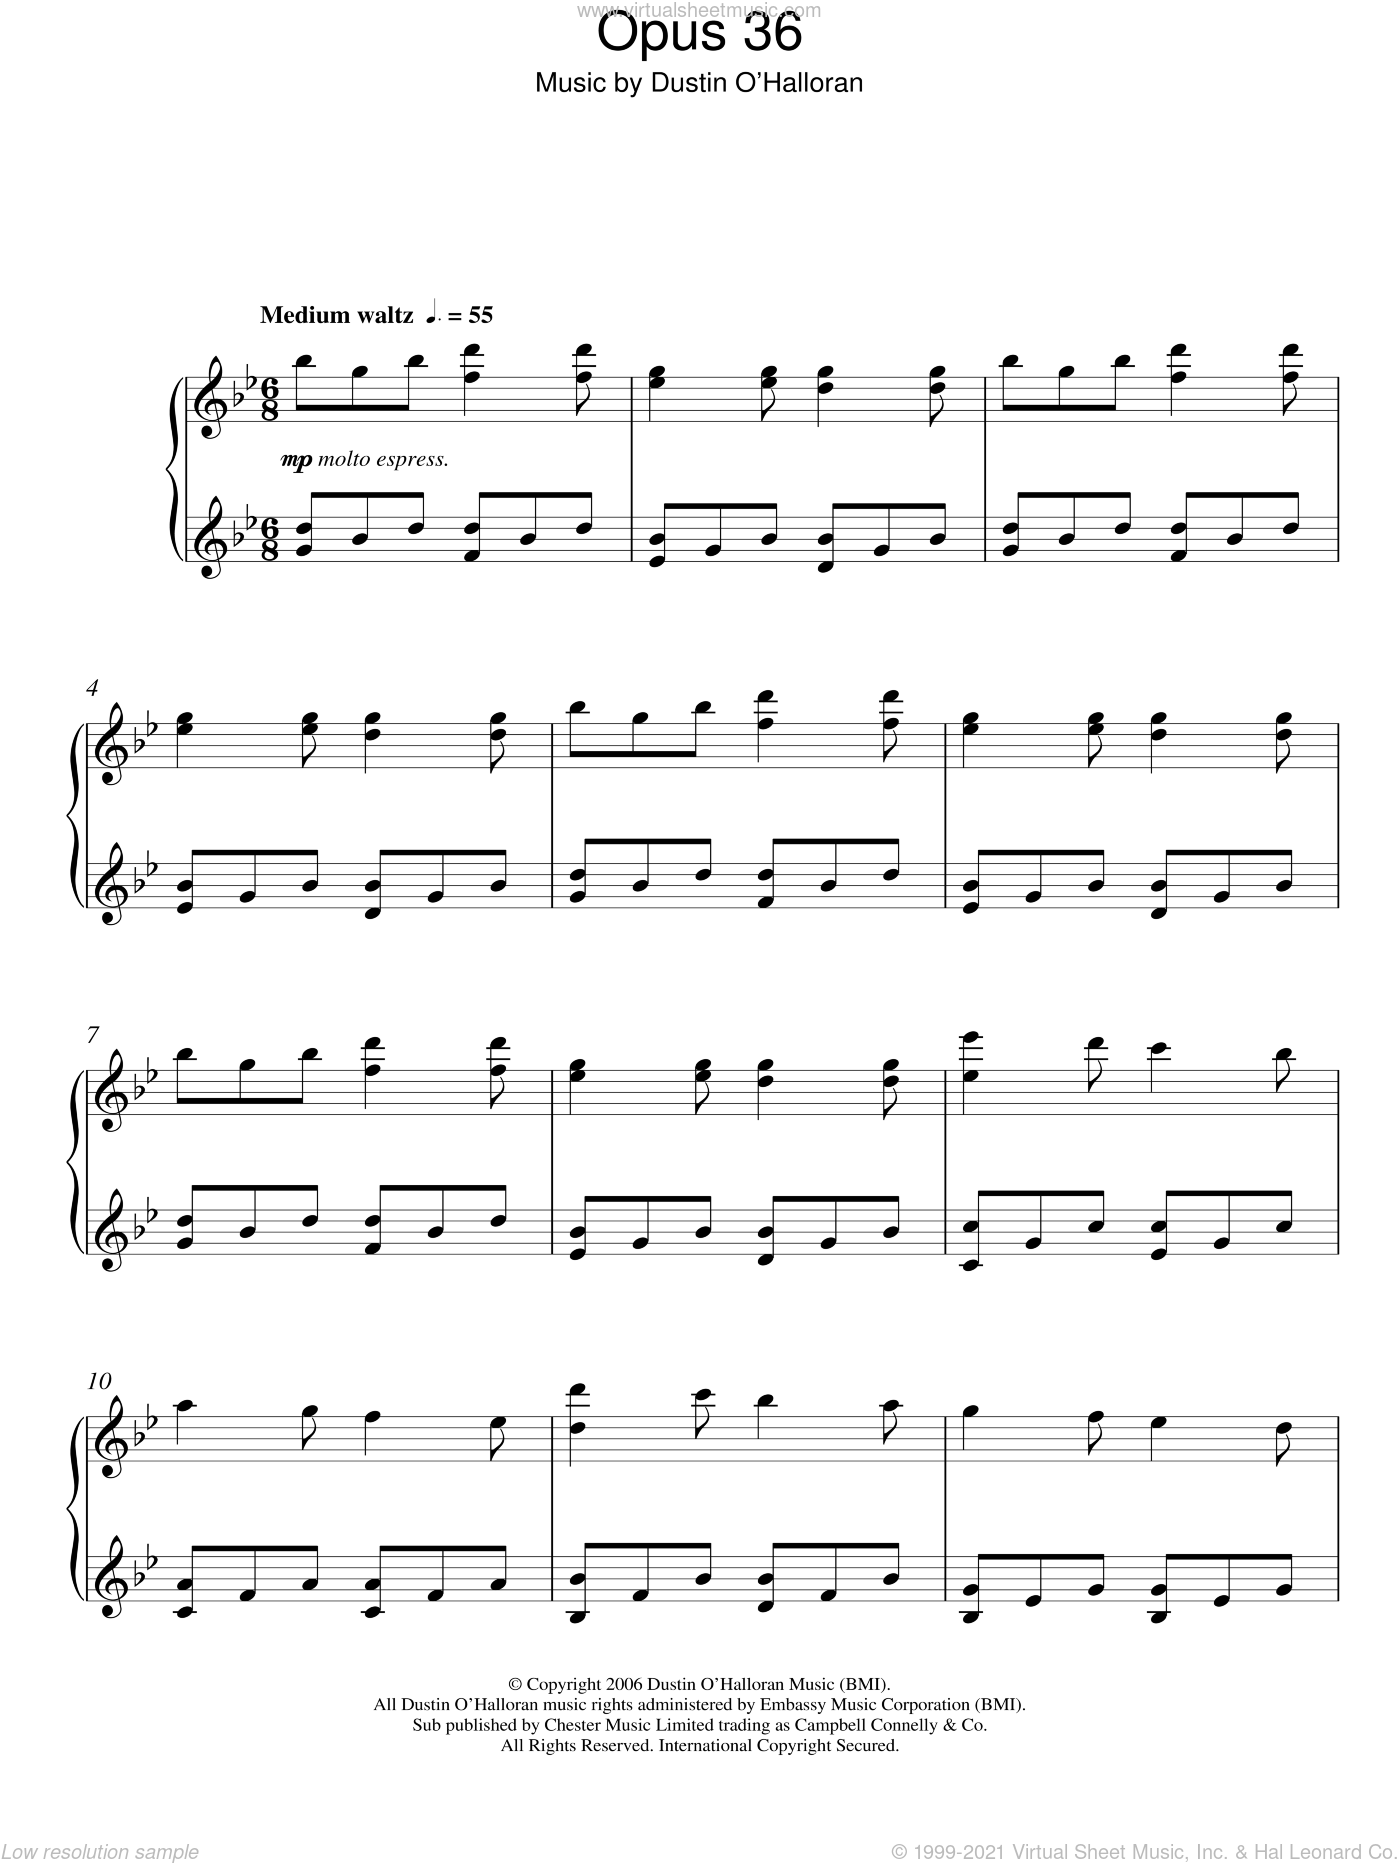 Opus 36 sheet music for piano solo by Dustin O'Halloran